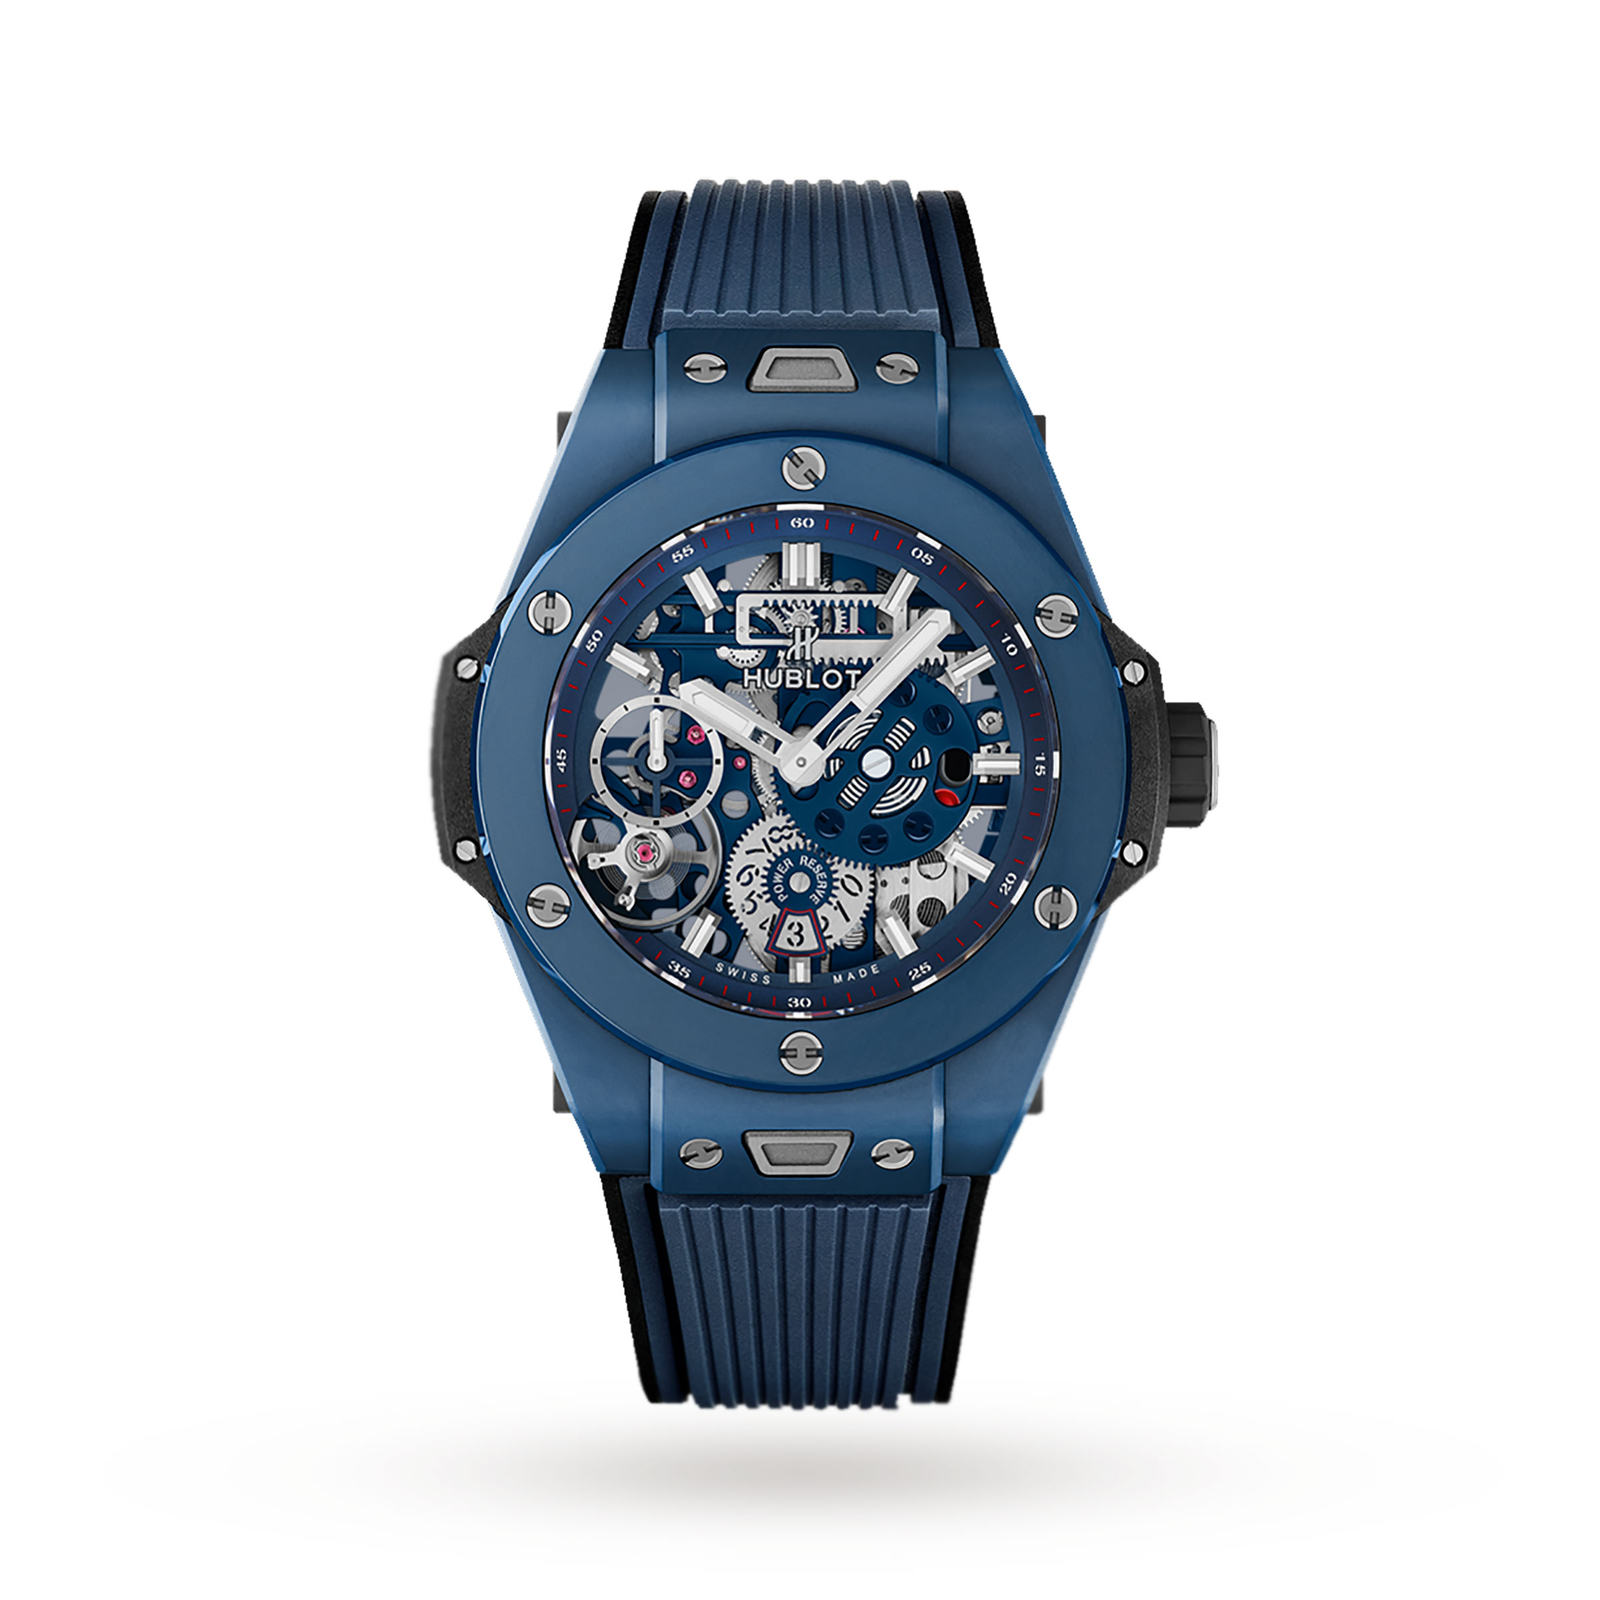 Hublot Big Bang MECA-10 Ceramic Blue 414.EX.5123.RX 45mm